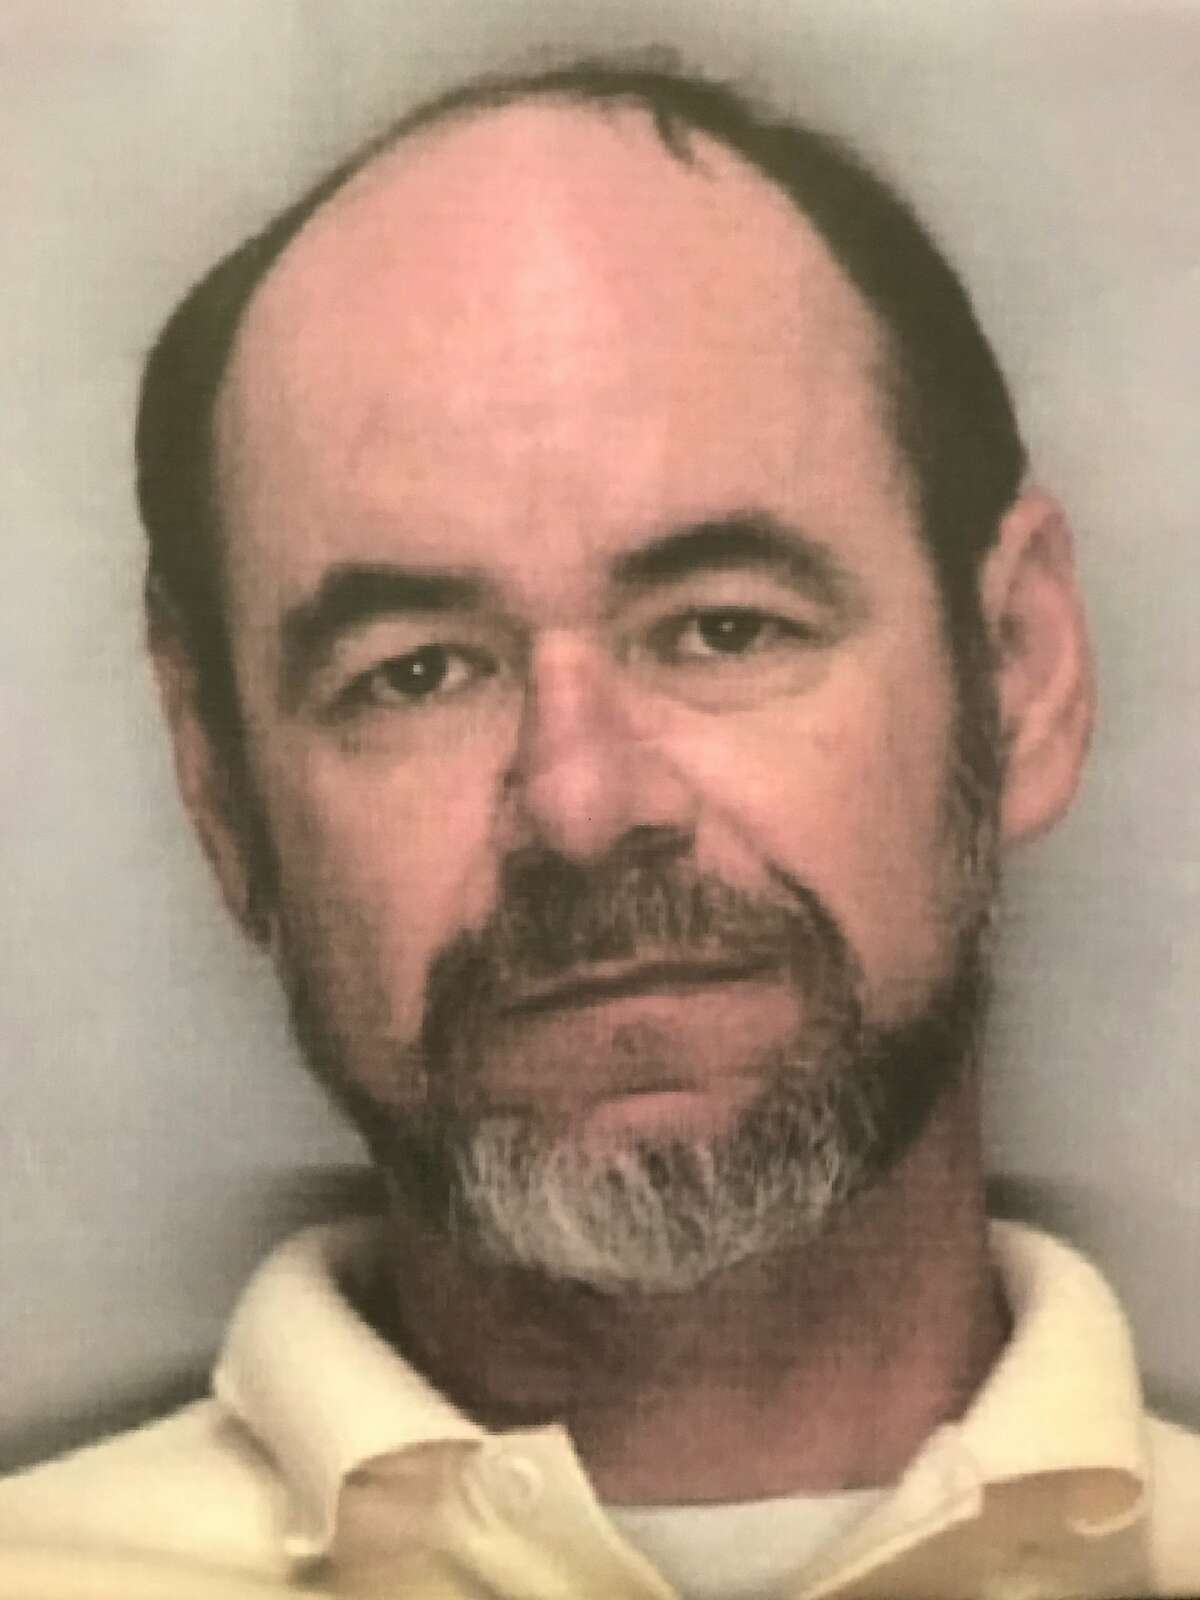 Undated photo of Stephen Blake Crawford, who committed suicide earlier today when the sheriff's department was at his door to serve a search warrant. He is the suspect in killing of Arlis Perry at Stanford Memorial Church in 1974. Photo provided by Santa Clara County Sheriff's Department